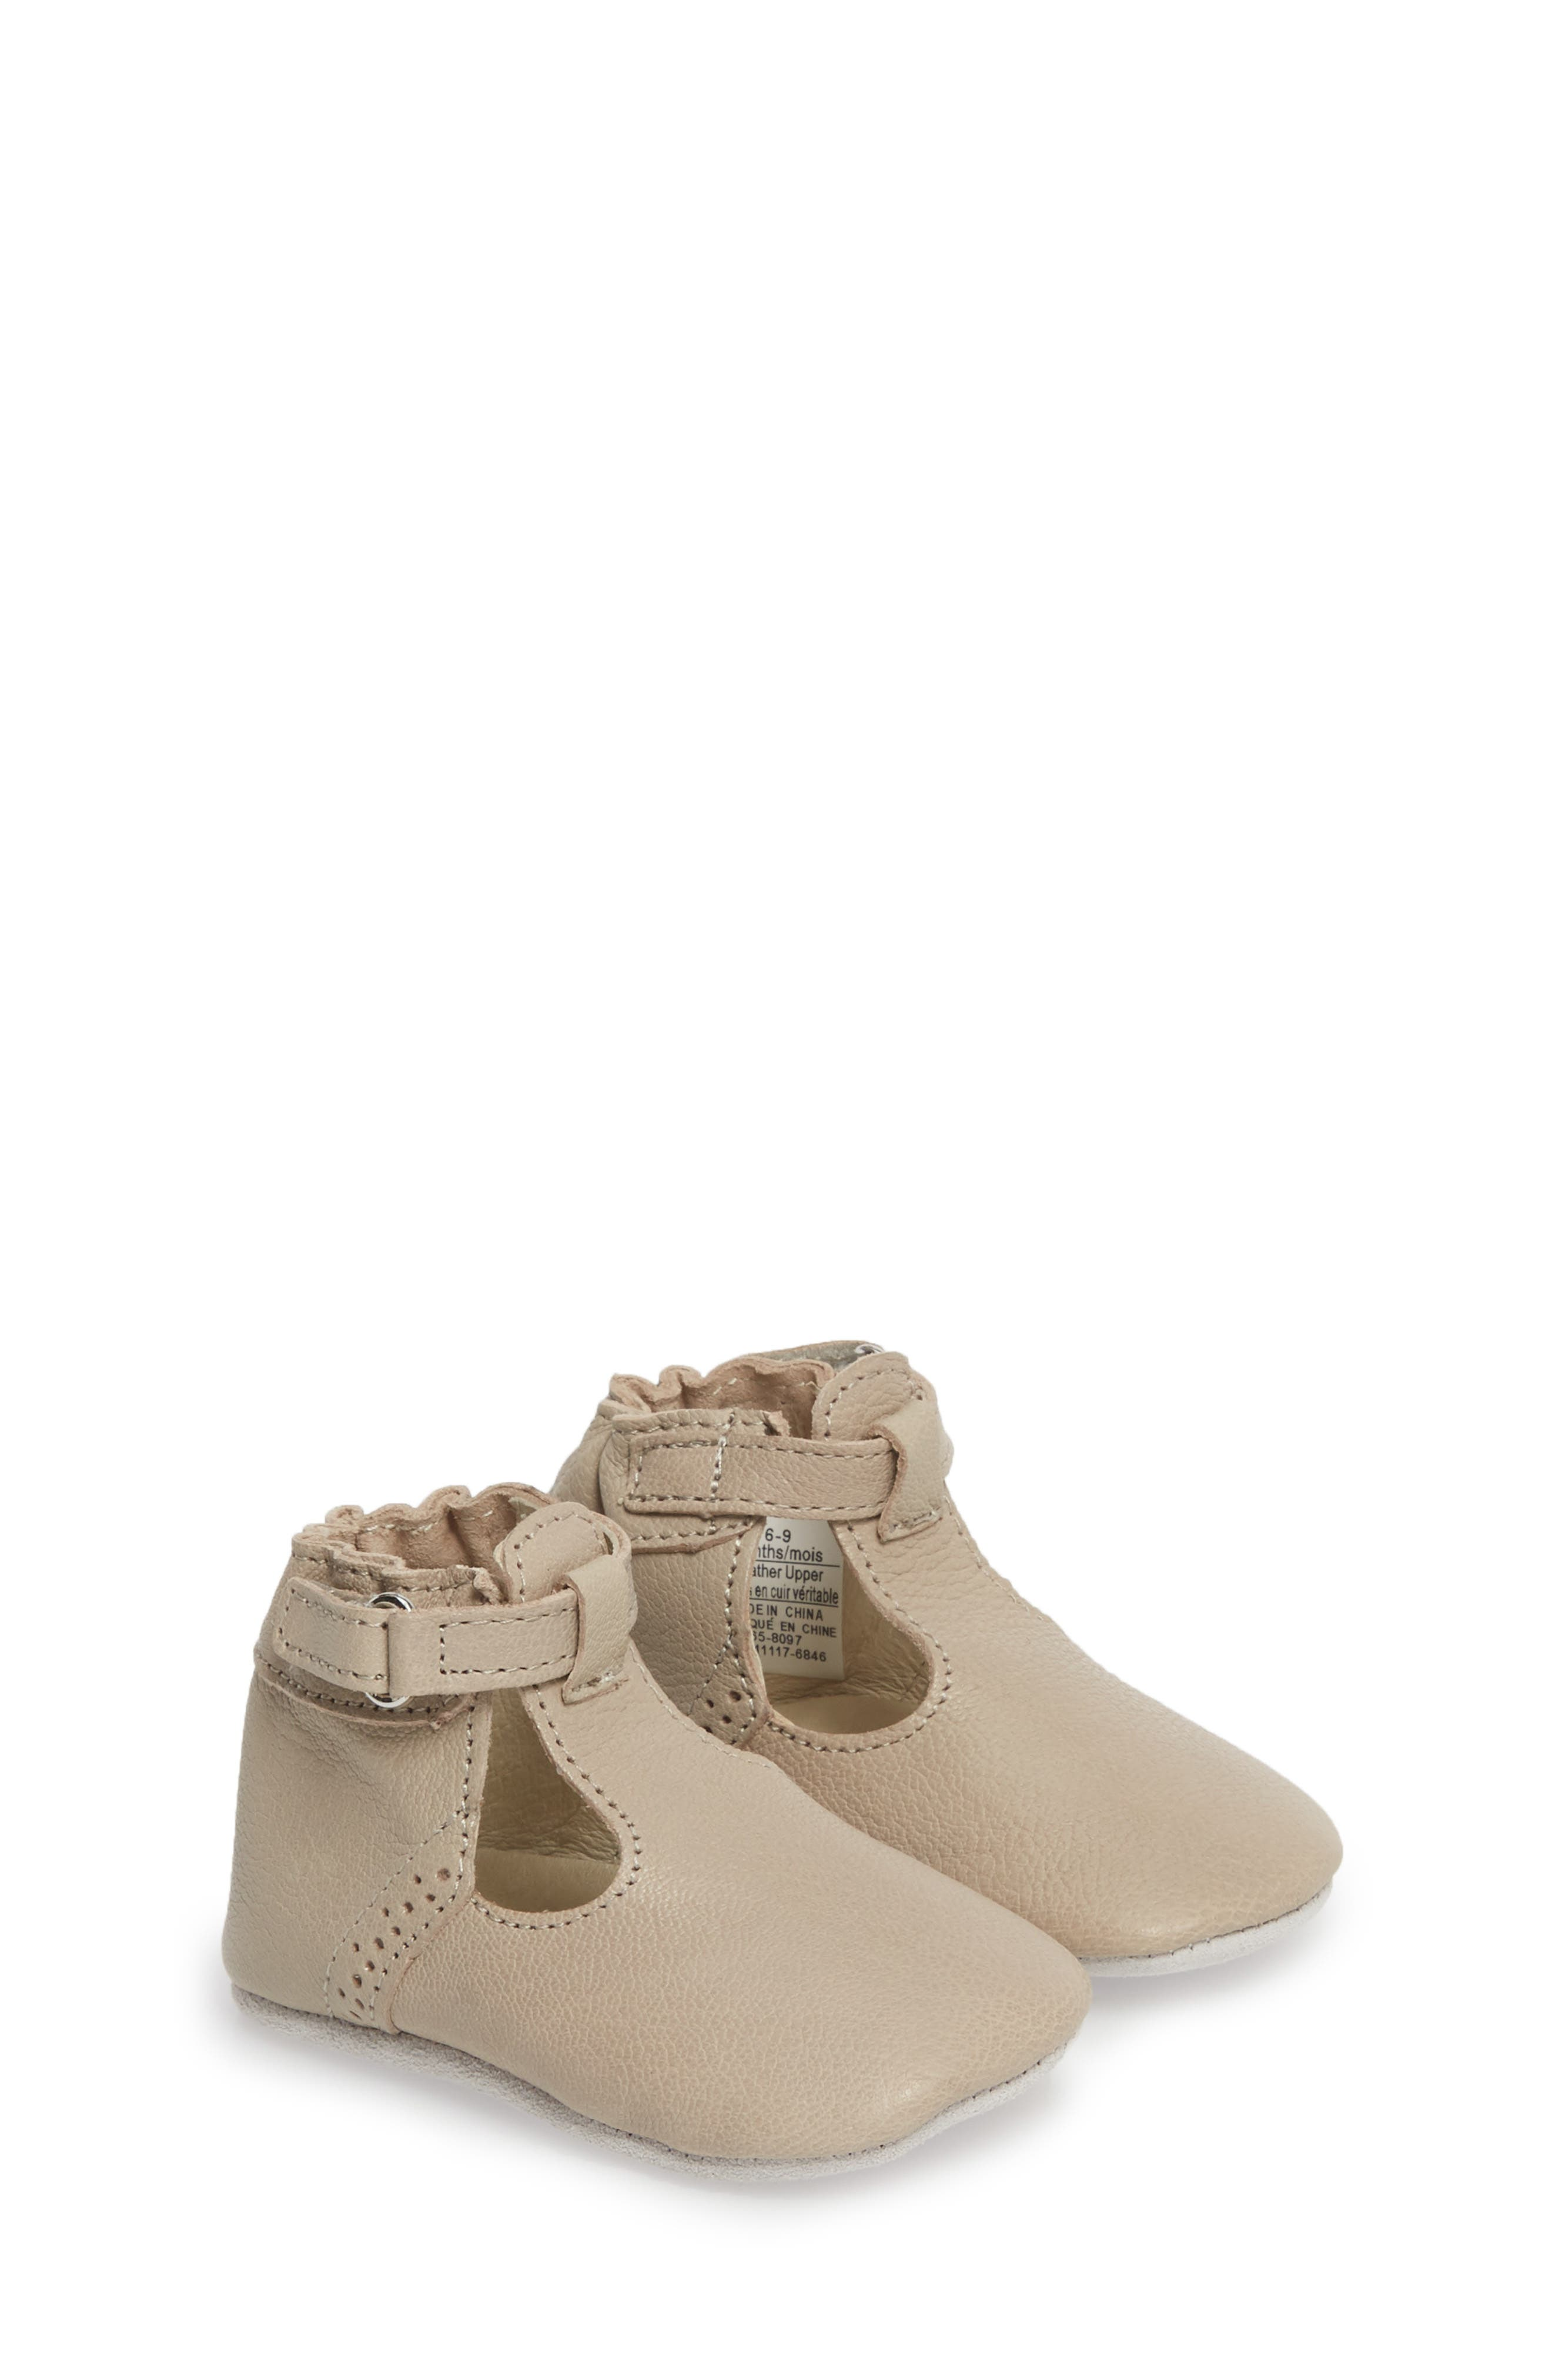 Penny T-Strap Mary Jane Crib Shoe,                         Main,                         color, TAUPE